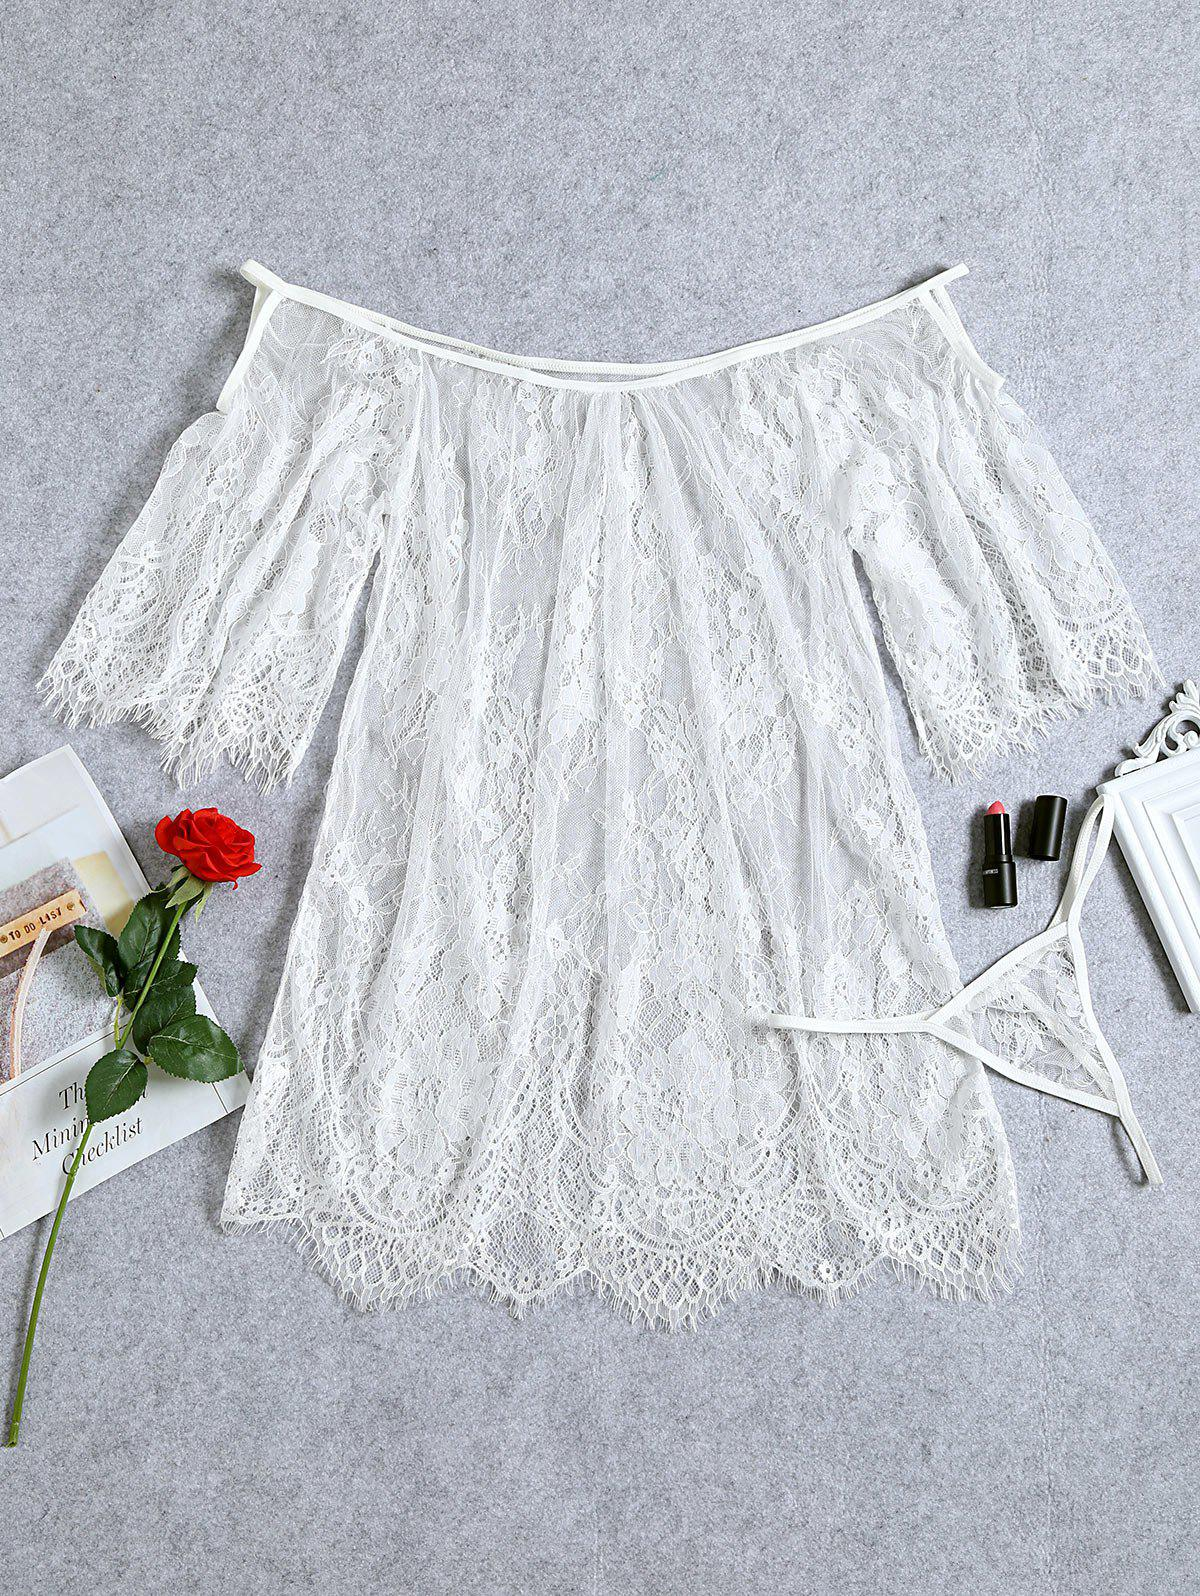 Cheap Lace Sheer Eyelash Lingerie Dress